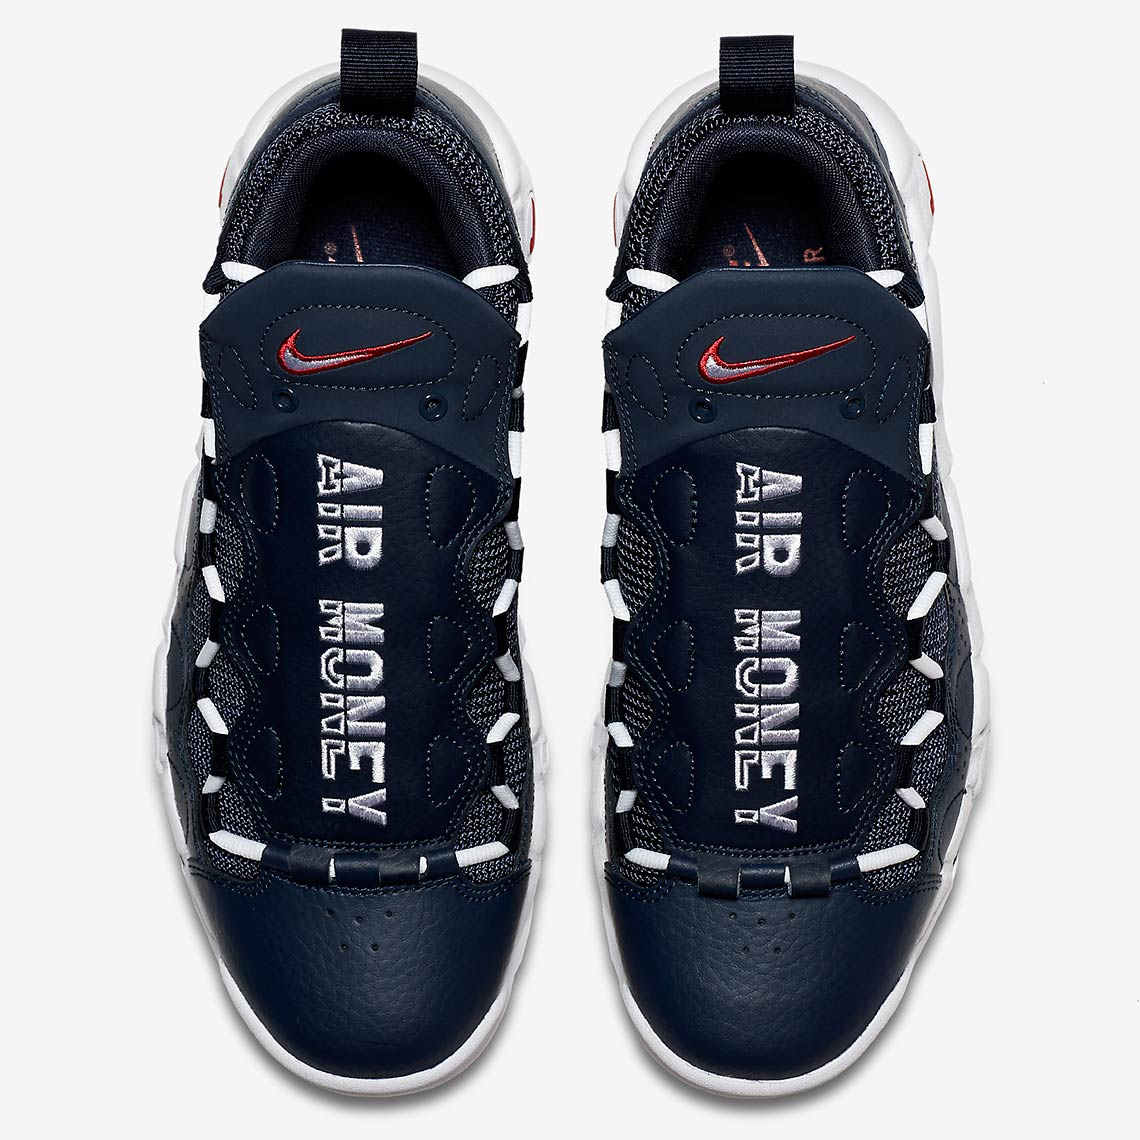 super popular c303e 303ed The Nike Air More Money Gets Patriotic For July 4th